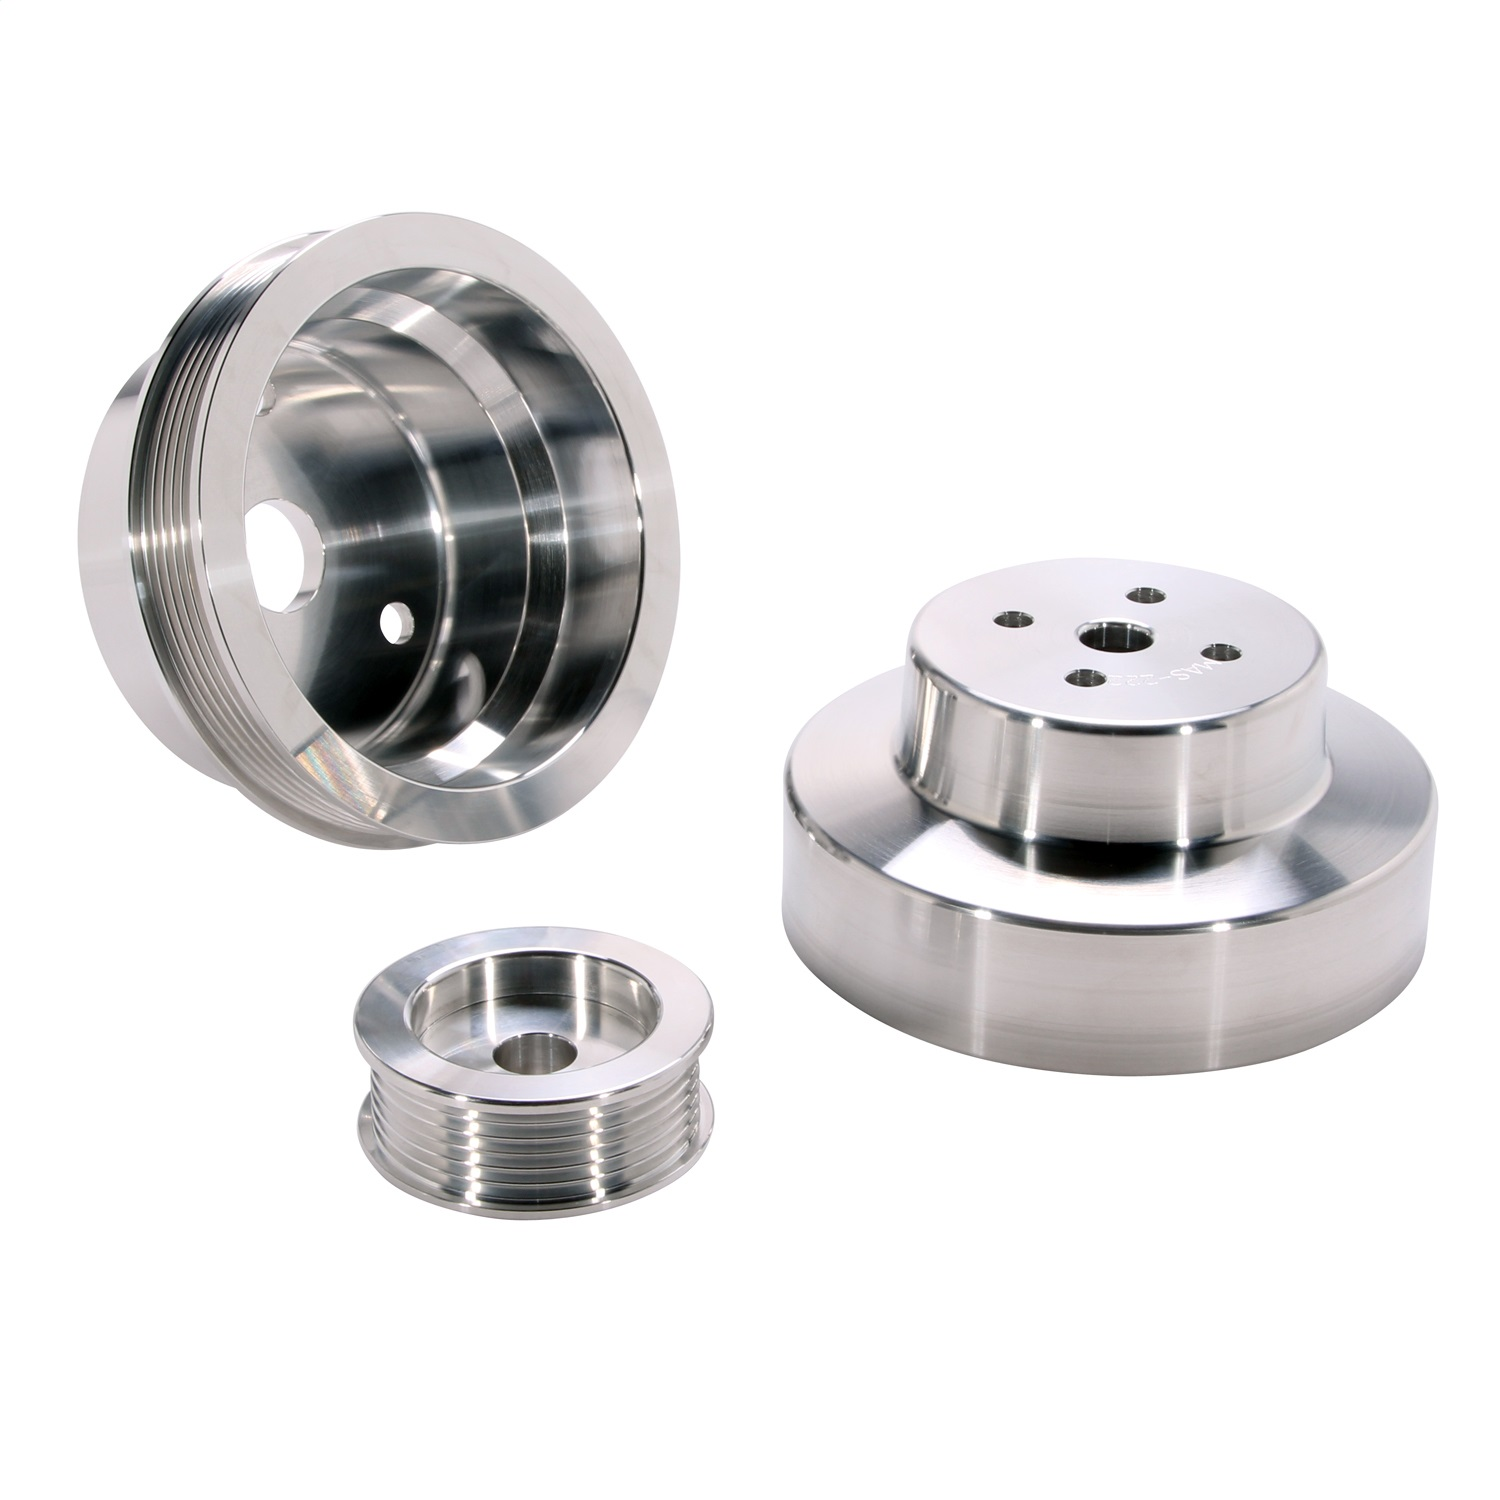 BBK Performance Parts 1603 Power-Plus Series Underdrive Pulley System